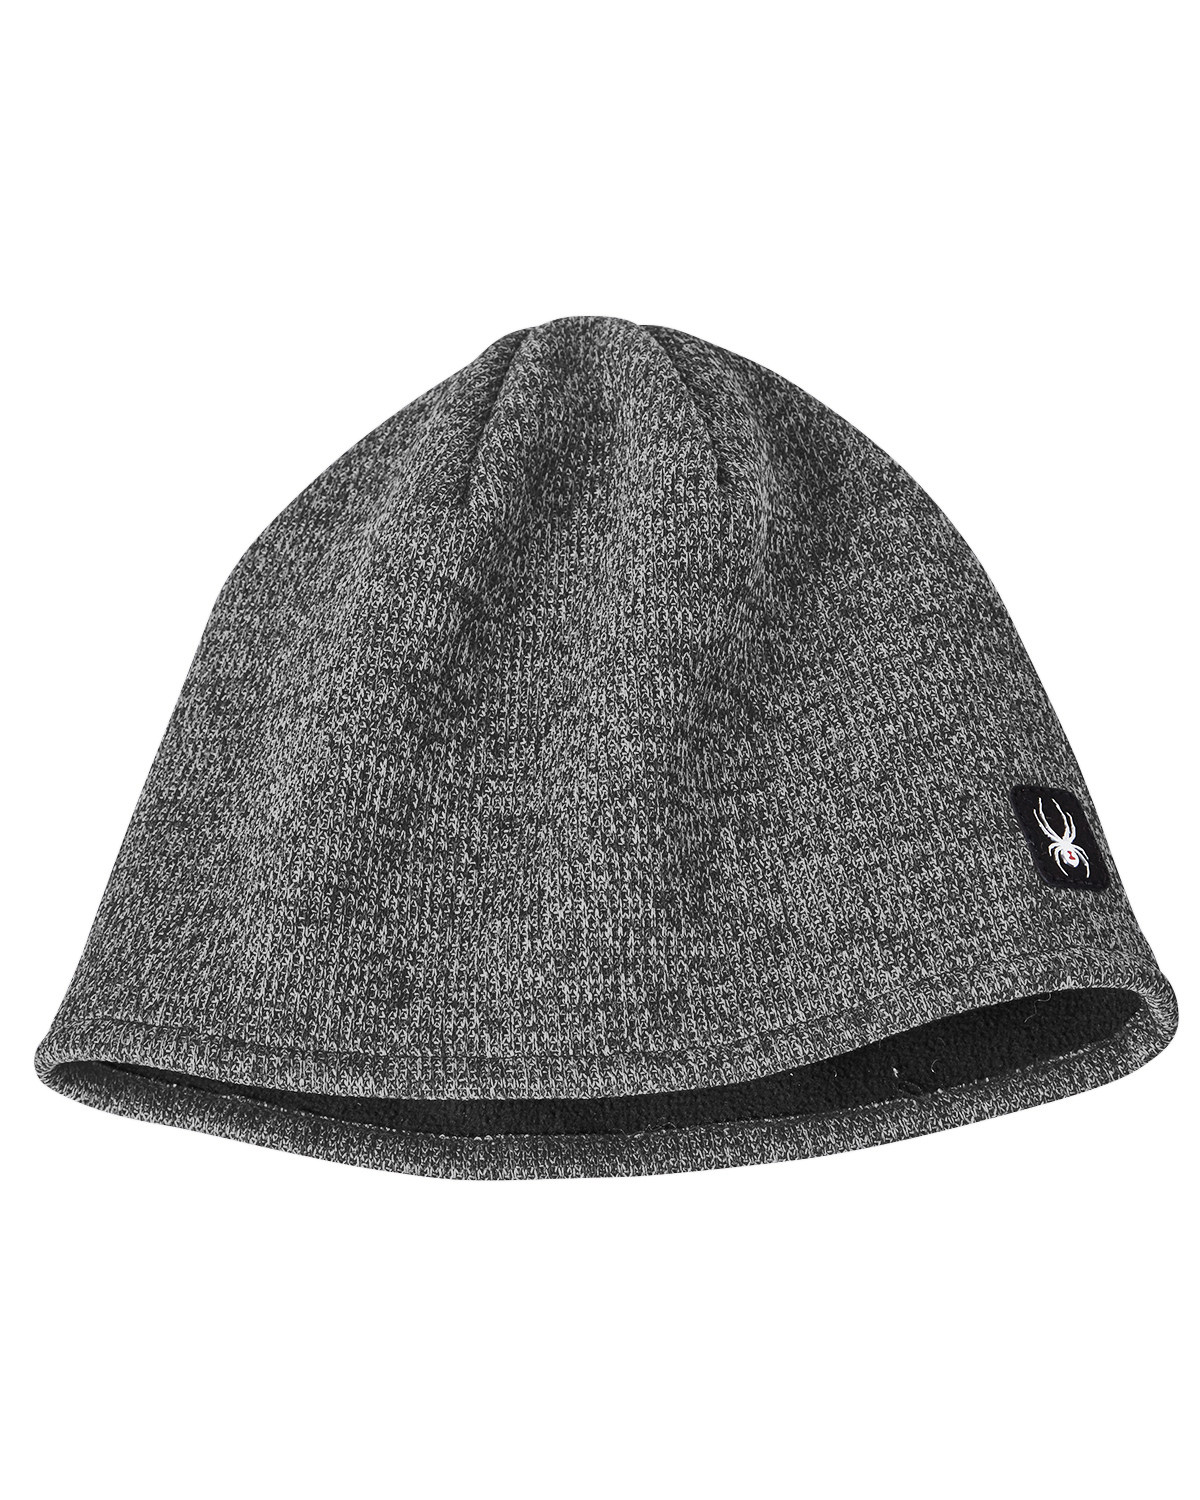 Picture of Spyder Adult Constant Sweater Beanie